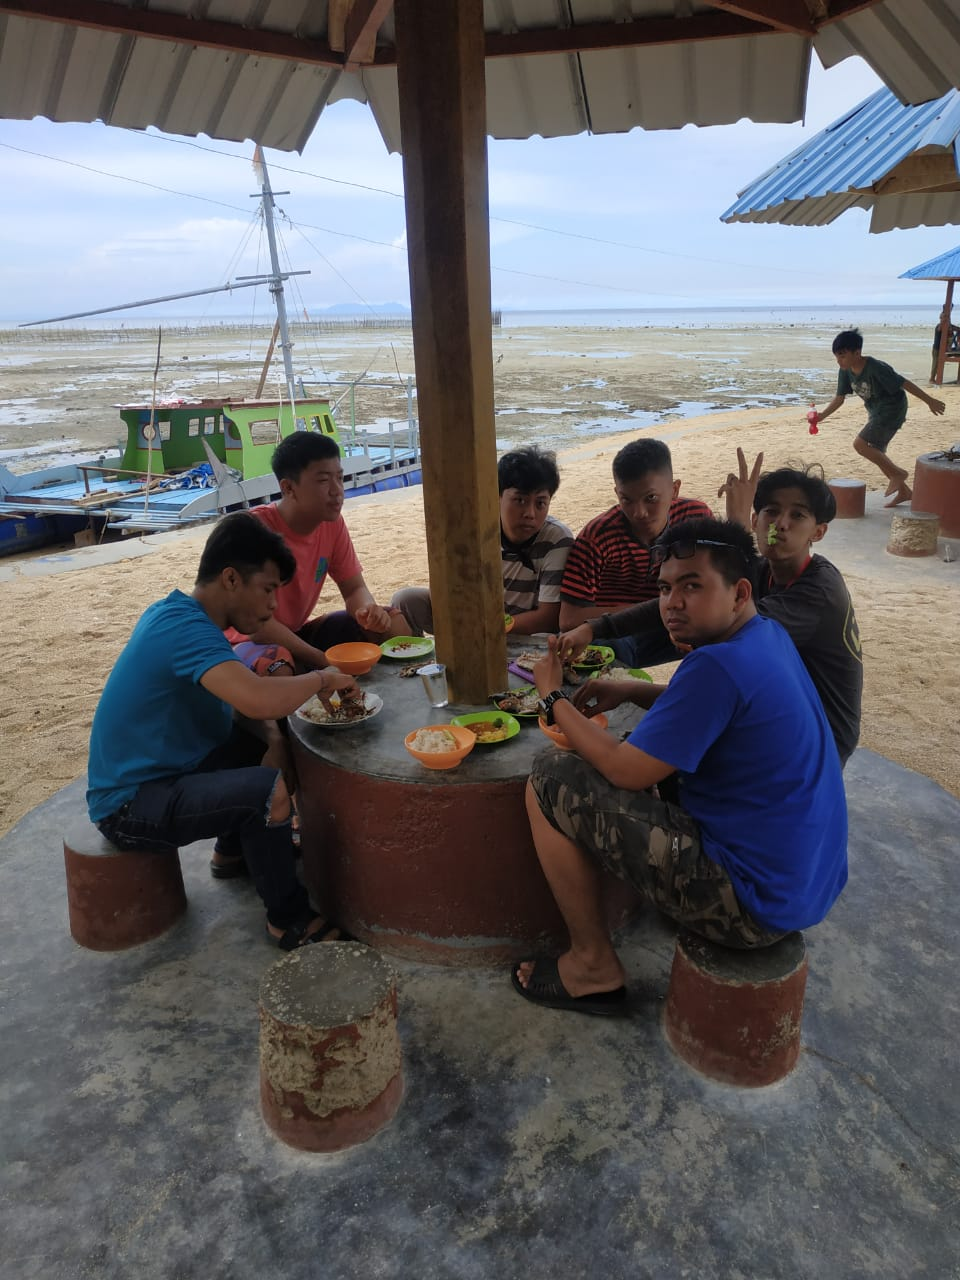 Barbeque, Pantai, dan Pondok